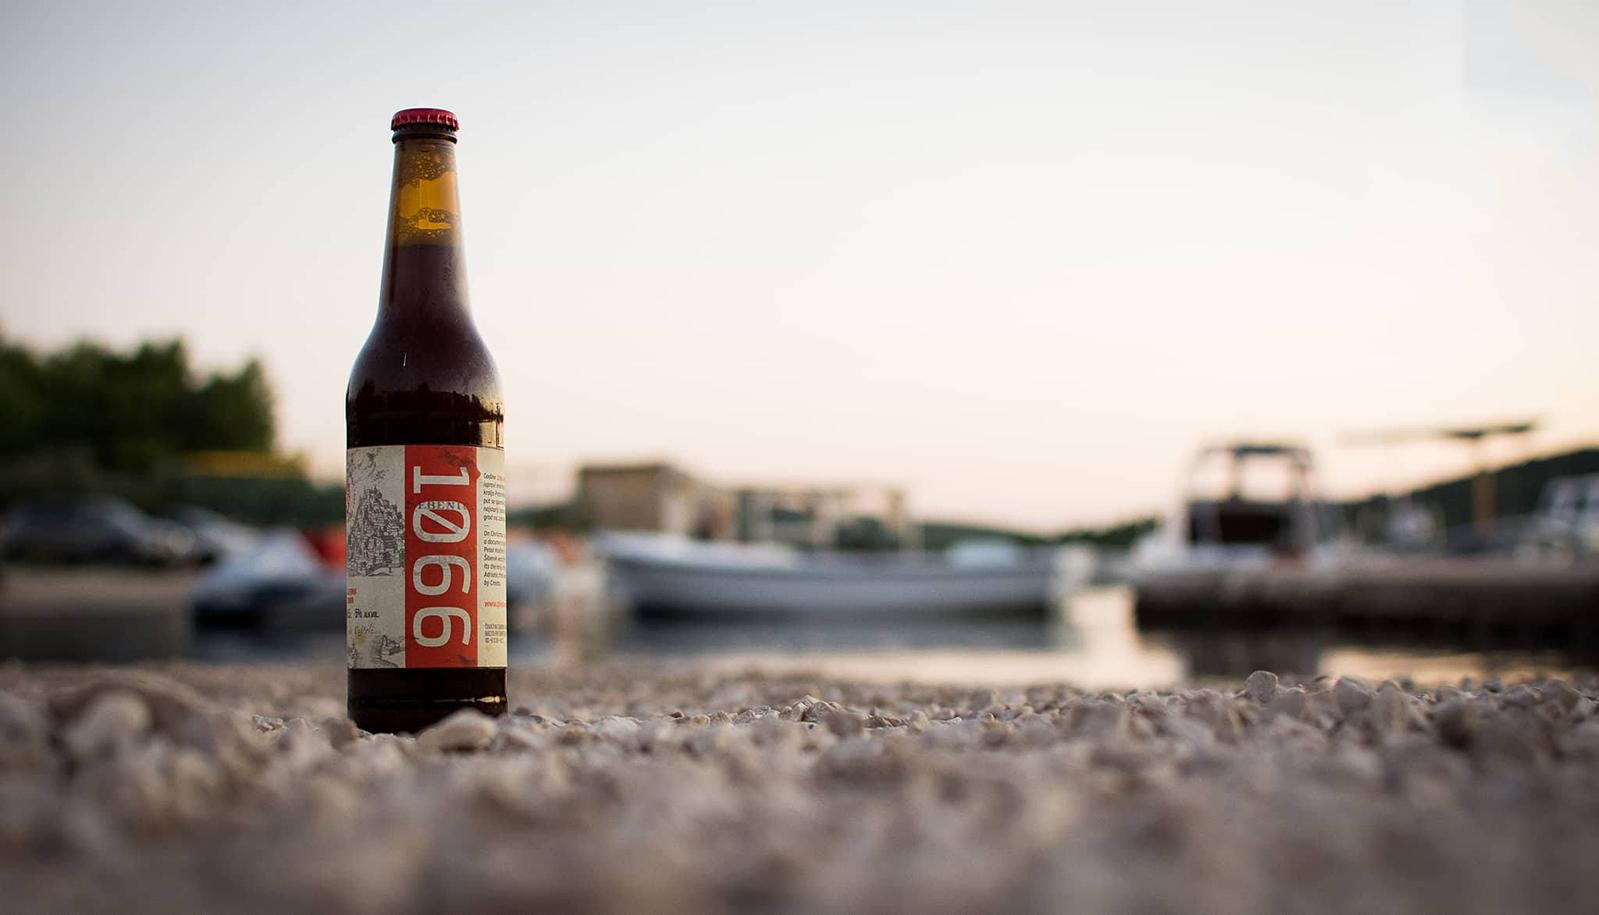 Šibenik brewery 022: Croatian craft beer with a dash of history